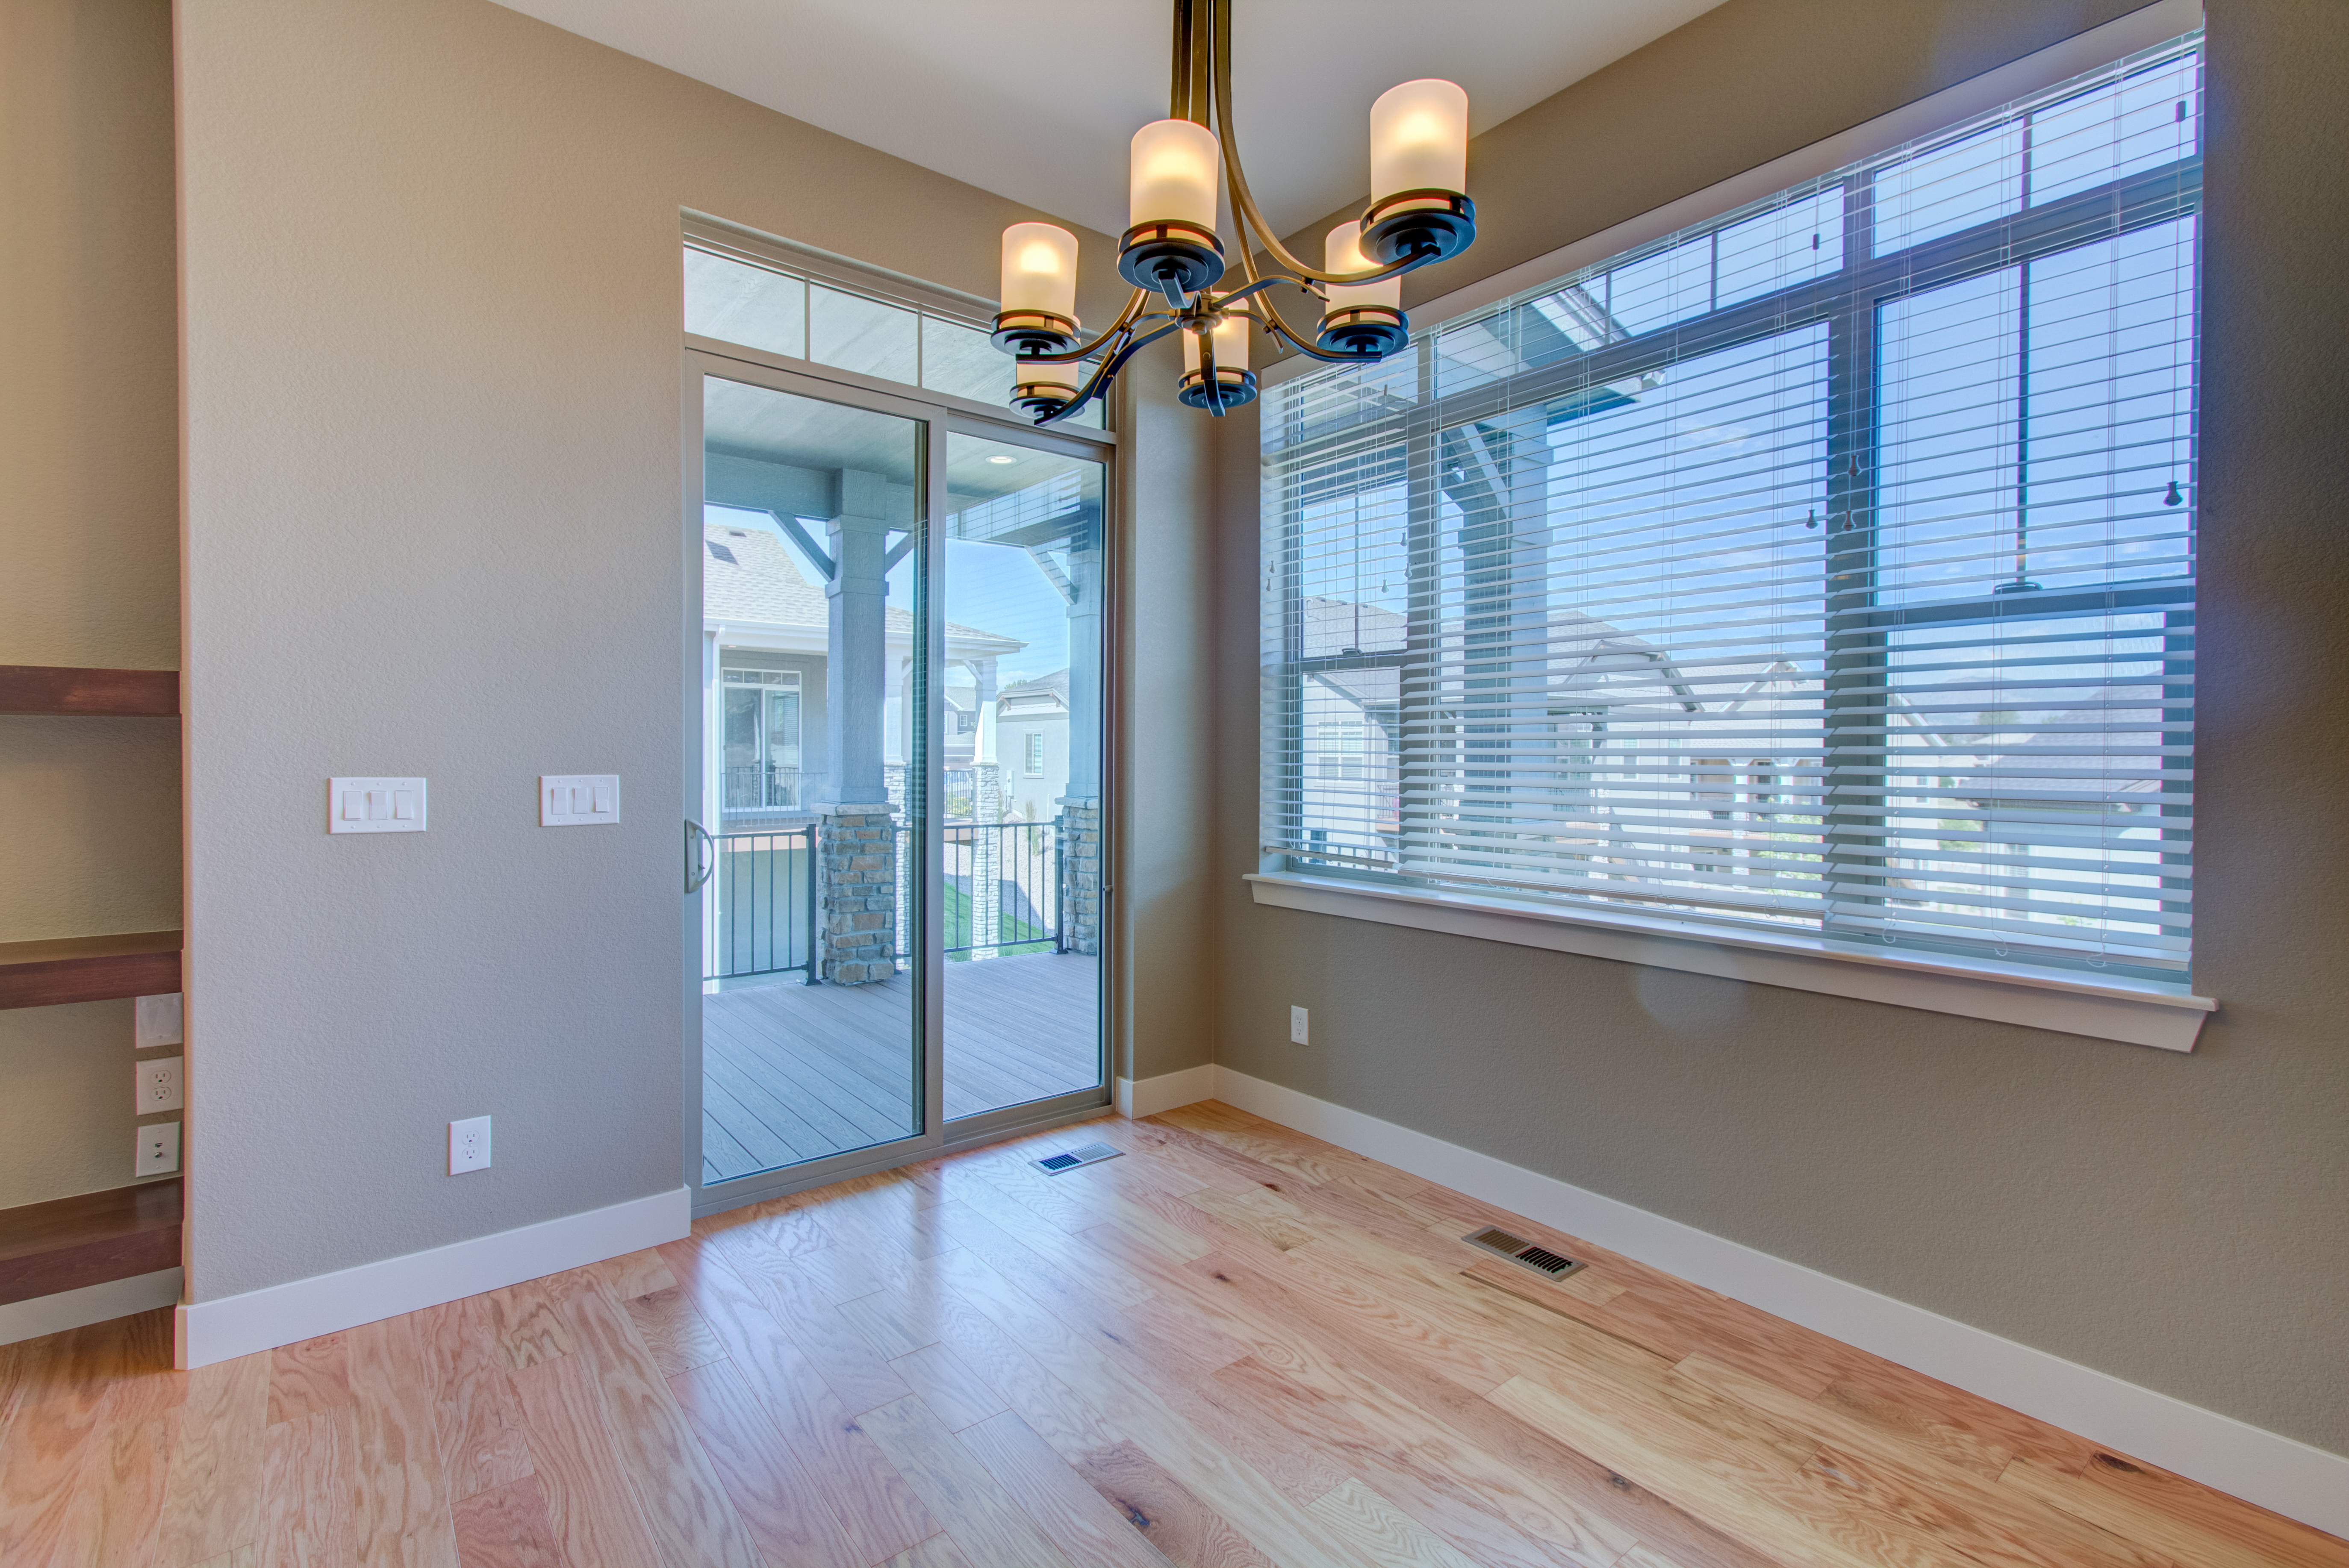 11_4793_20mariana_20hills_20cir_loveland_dining_20area_new_20homes_20for_20sale